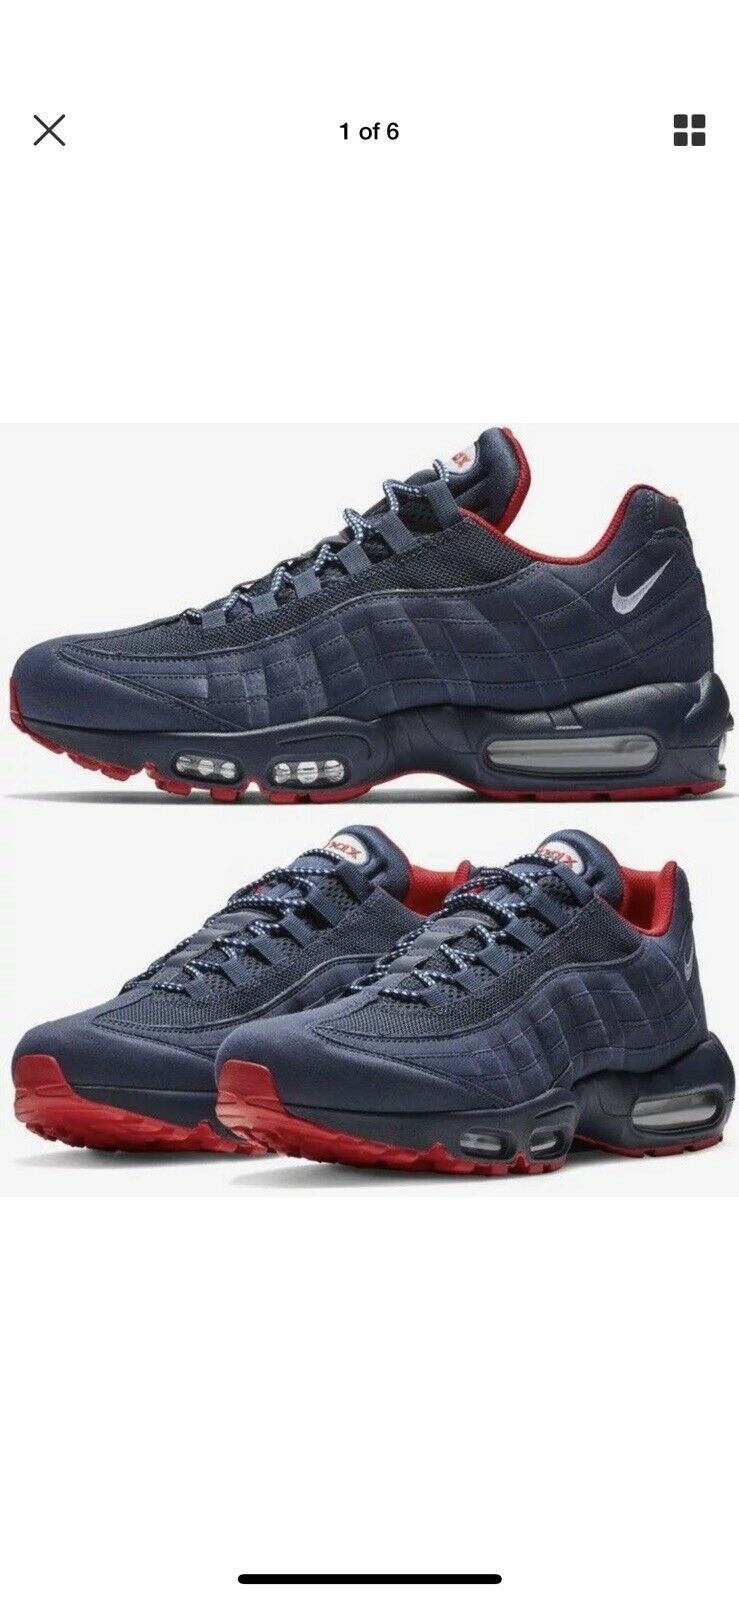 NIKE AIR MAX 95 PREM Sz 10.5 NAVY blueE - RED(BV1255-400)1 90 97 tn plus vapormax